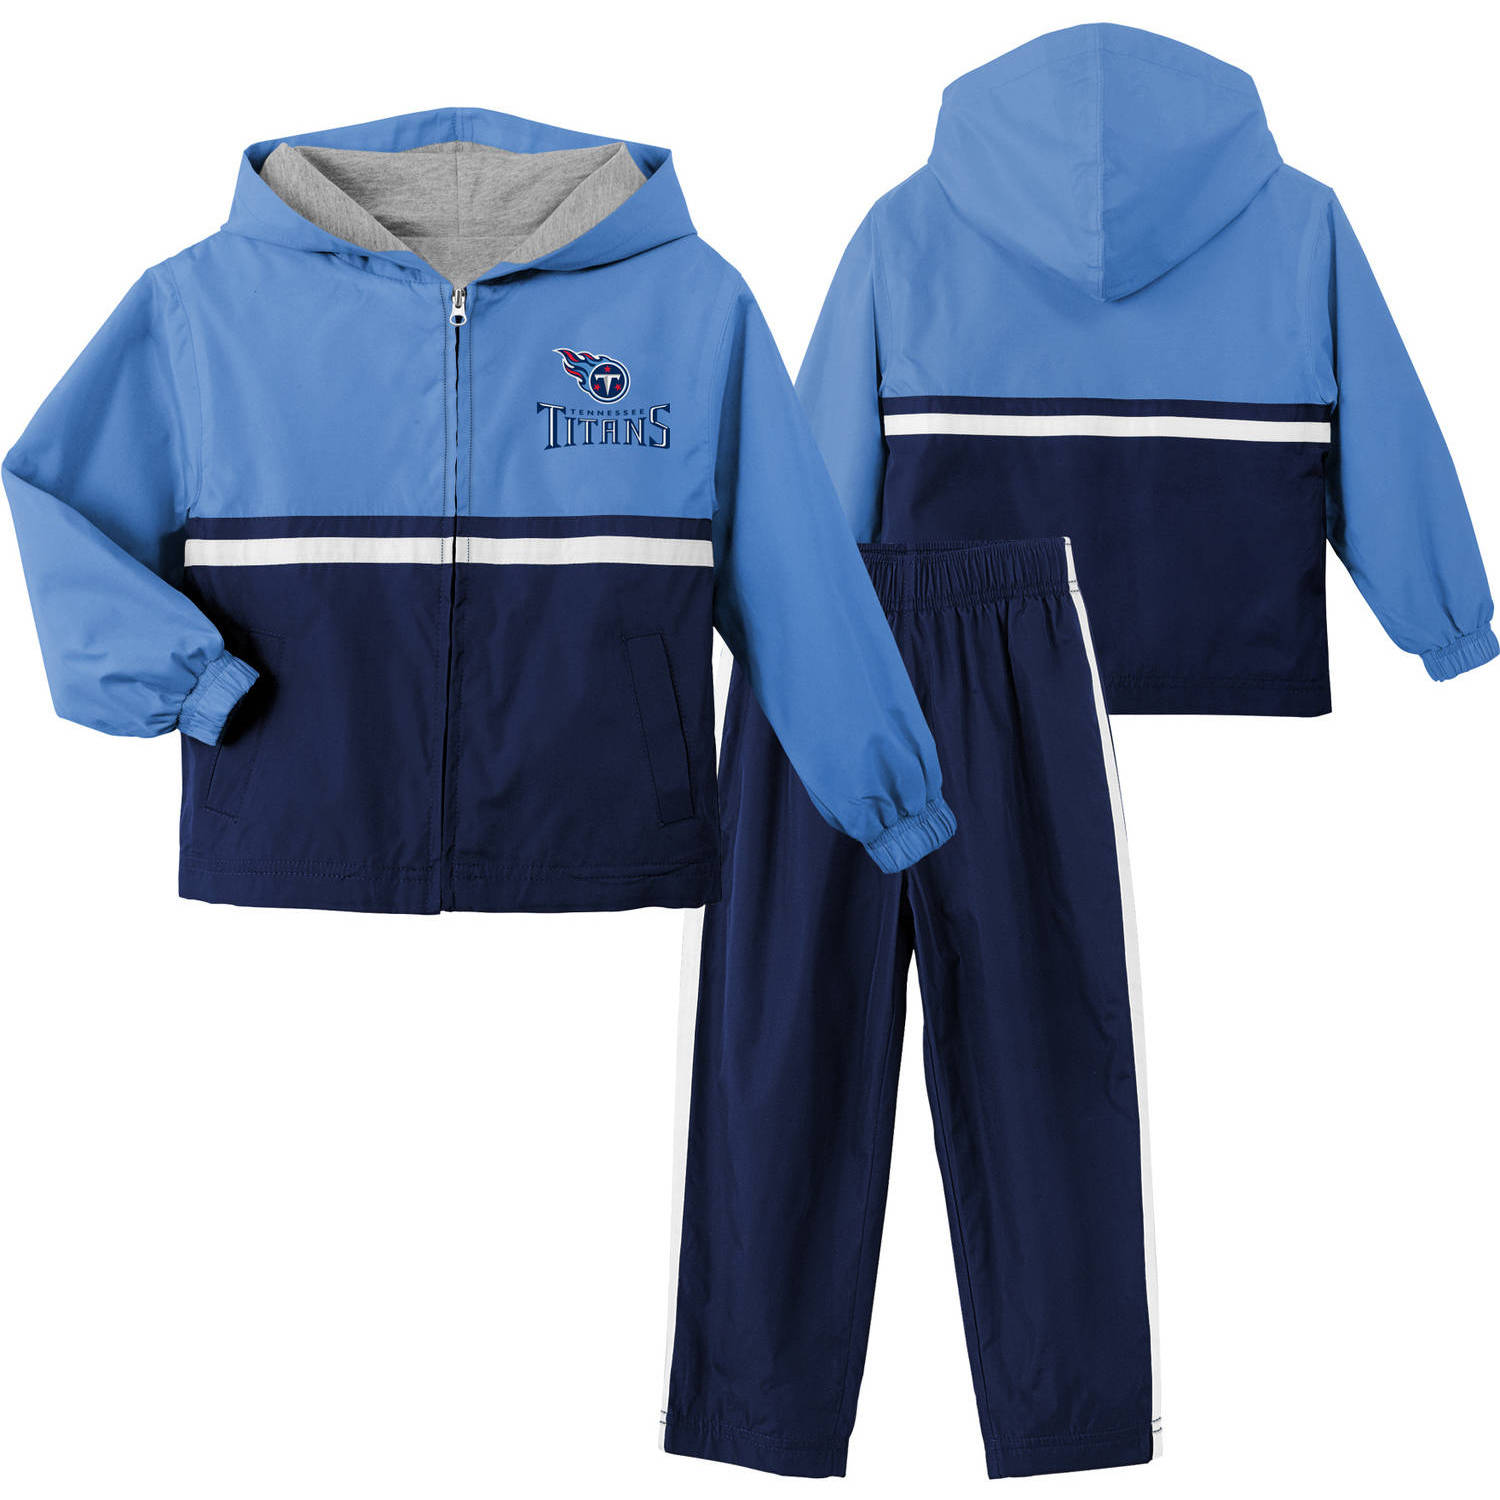 NFL Tennessee Titans Toddler Windsuit